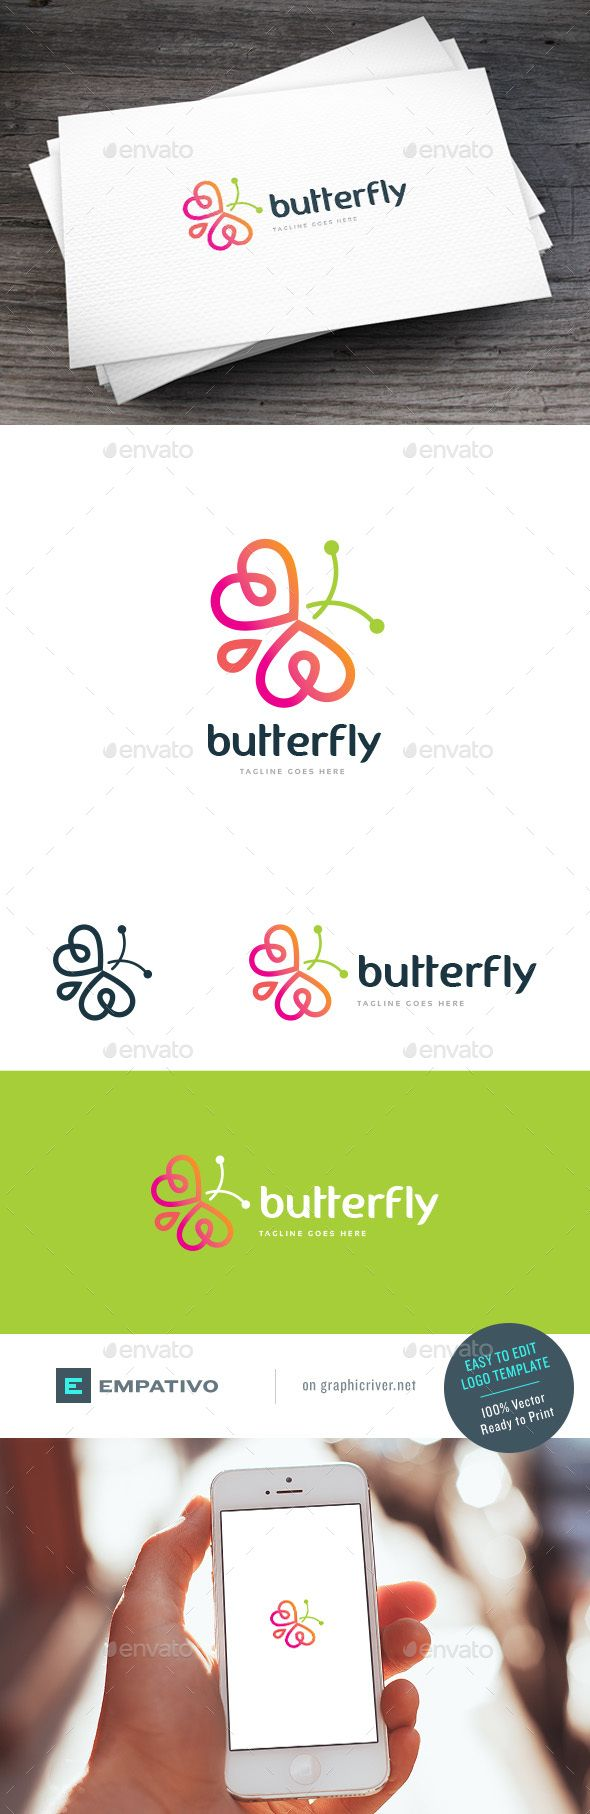 Logotype butterfly and letter b in different colour variants on a - Butterfly Logo Template